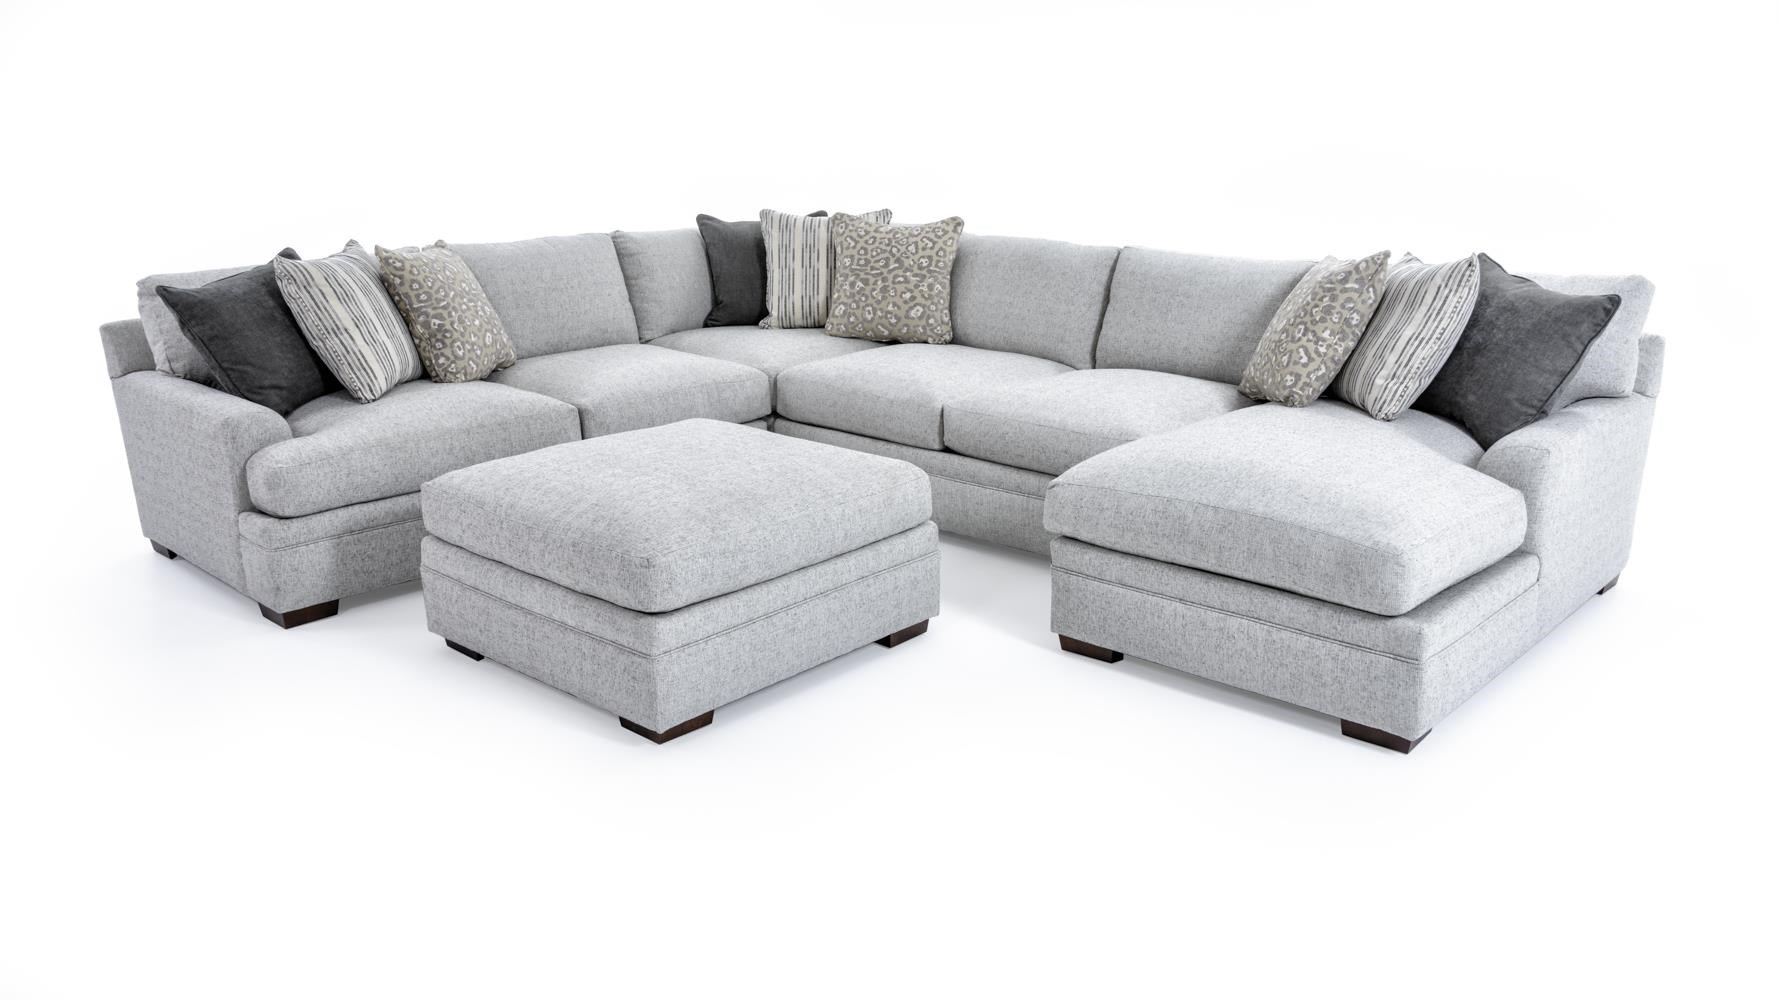 Furniture stores in miami florida - Casual Five Piece Sectional Sofa With Ottoman